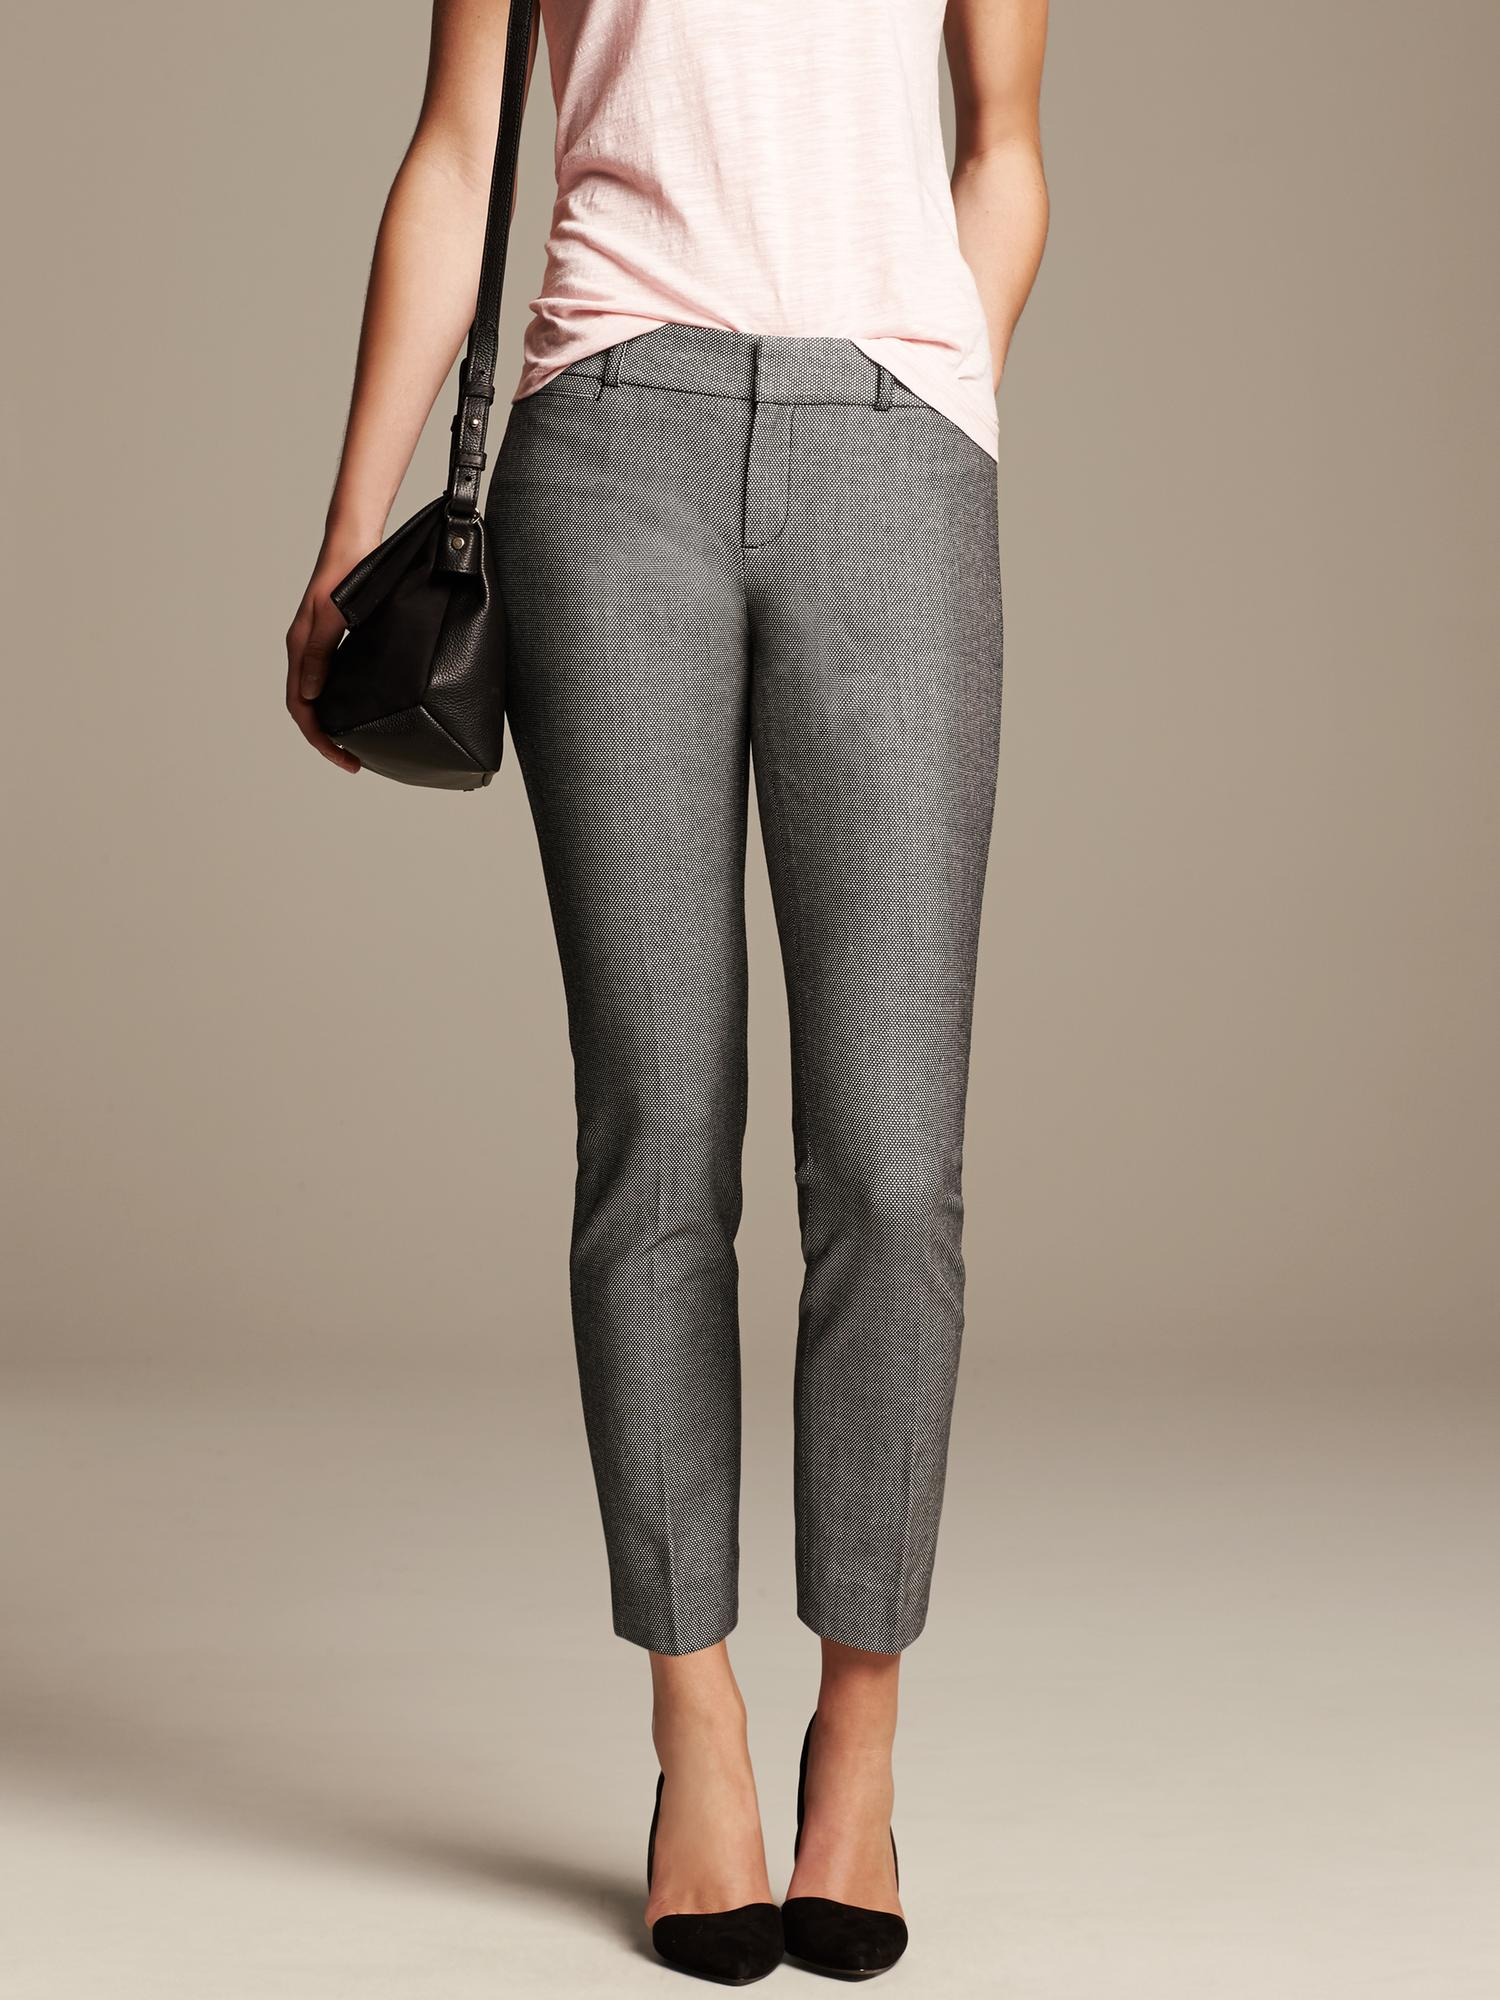 Banana republic Sloan Fit Black And White Slim Ankle Pant